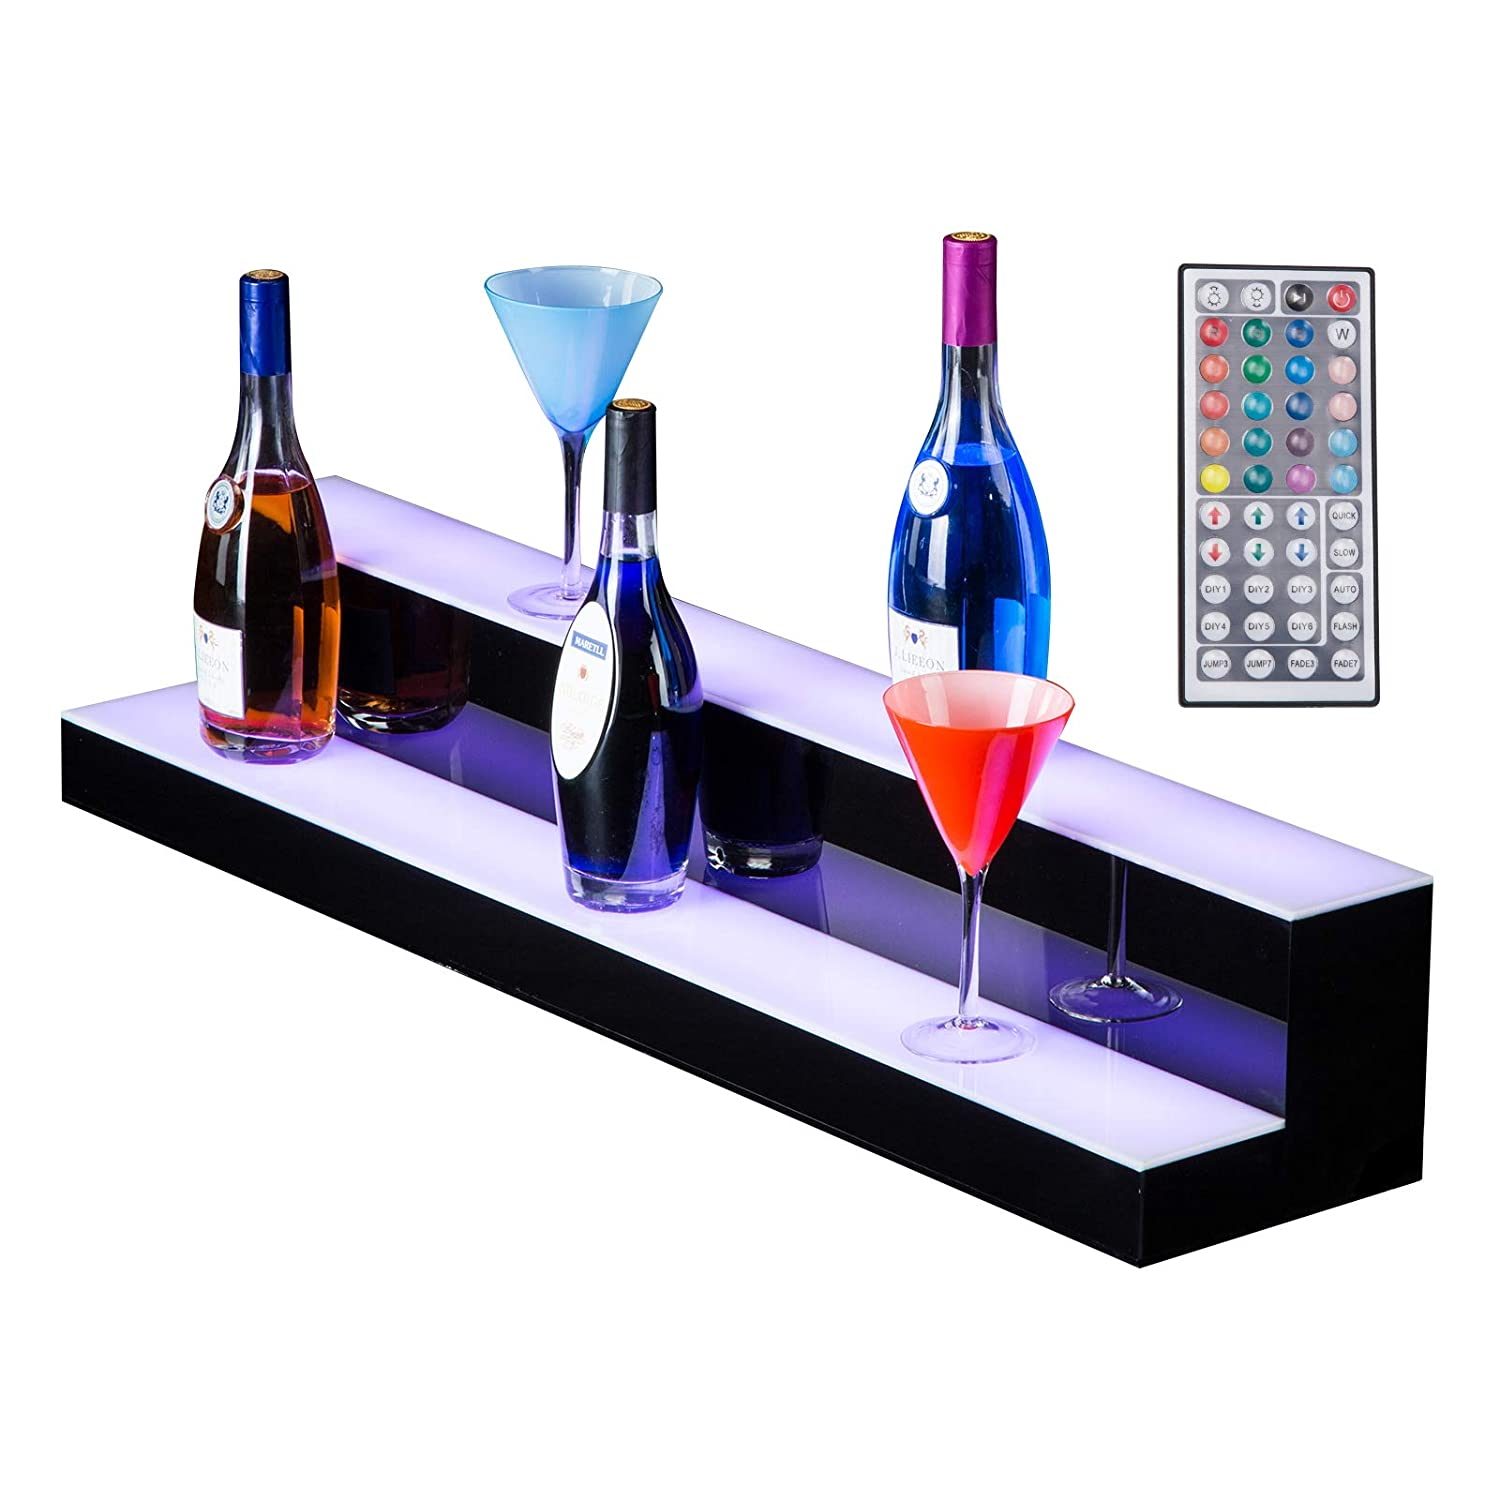 Prime Suncoo 40 2 Step Led Lighted Liquor Bottle Display Illuminated Bottle Shelf 2 Tier Home Bar Bottle Shelf Drinks Light Changing Shelves High Gloss Interior Design Ideas Lukepblogthenellocom